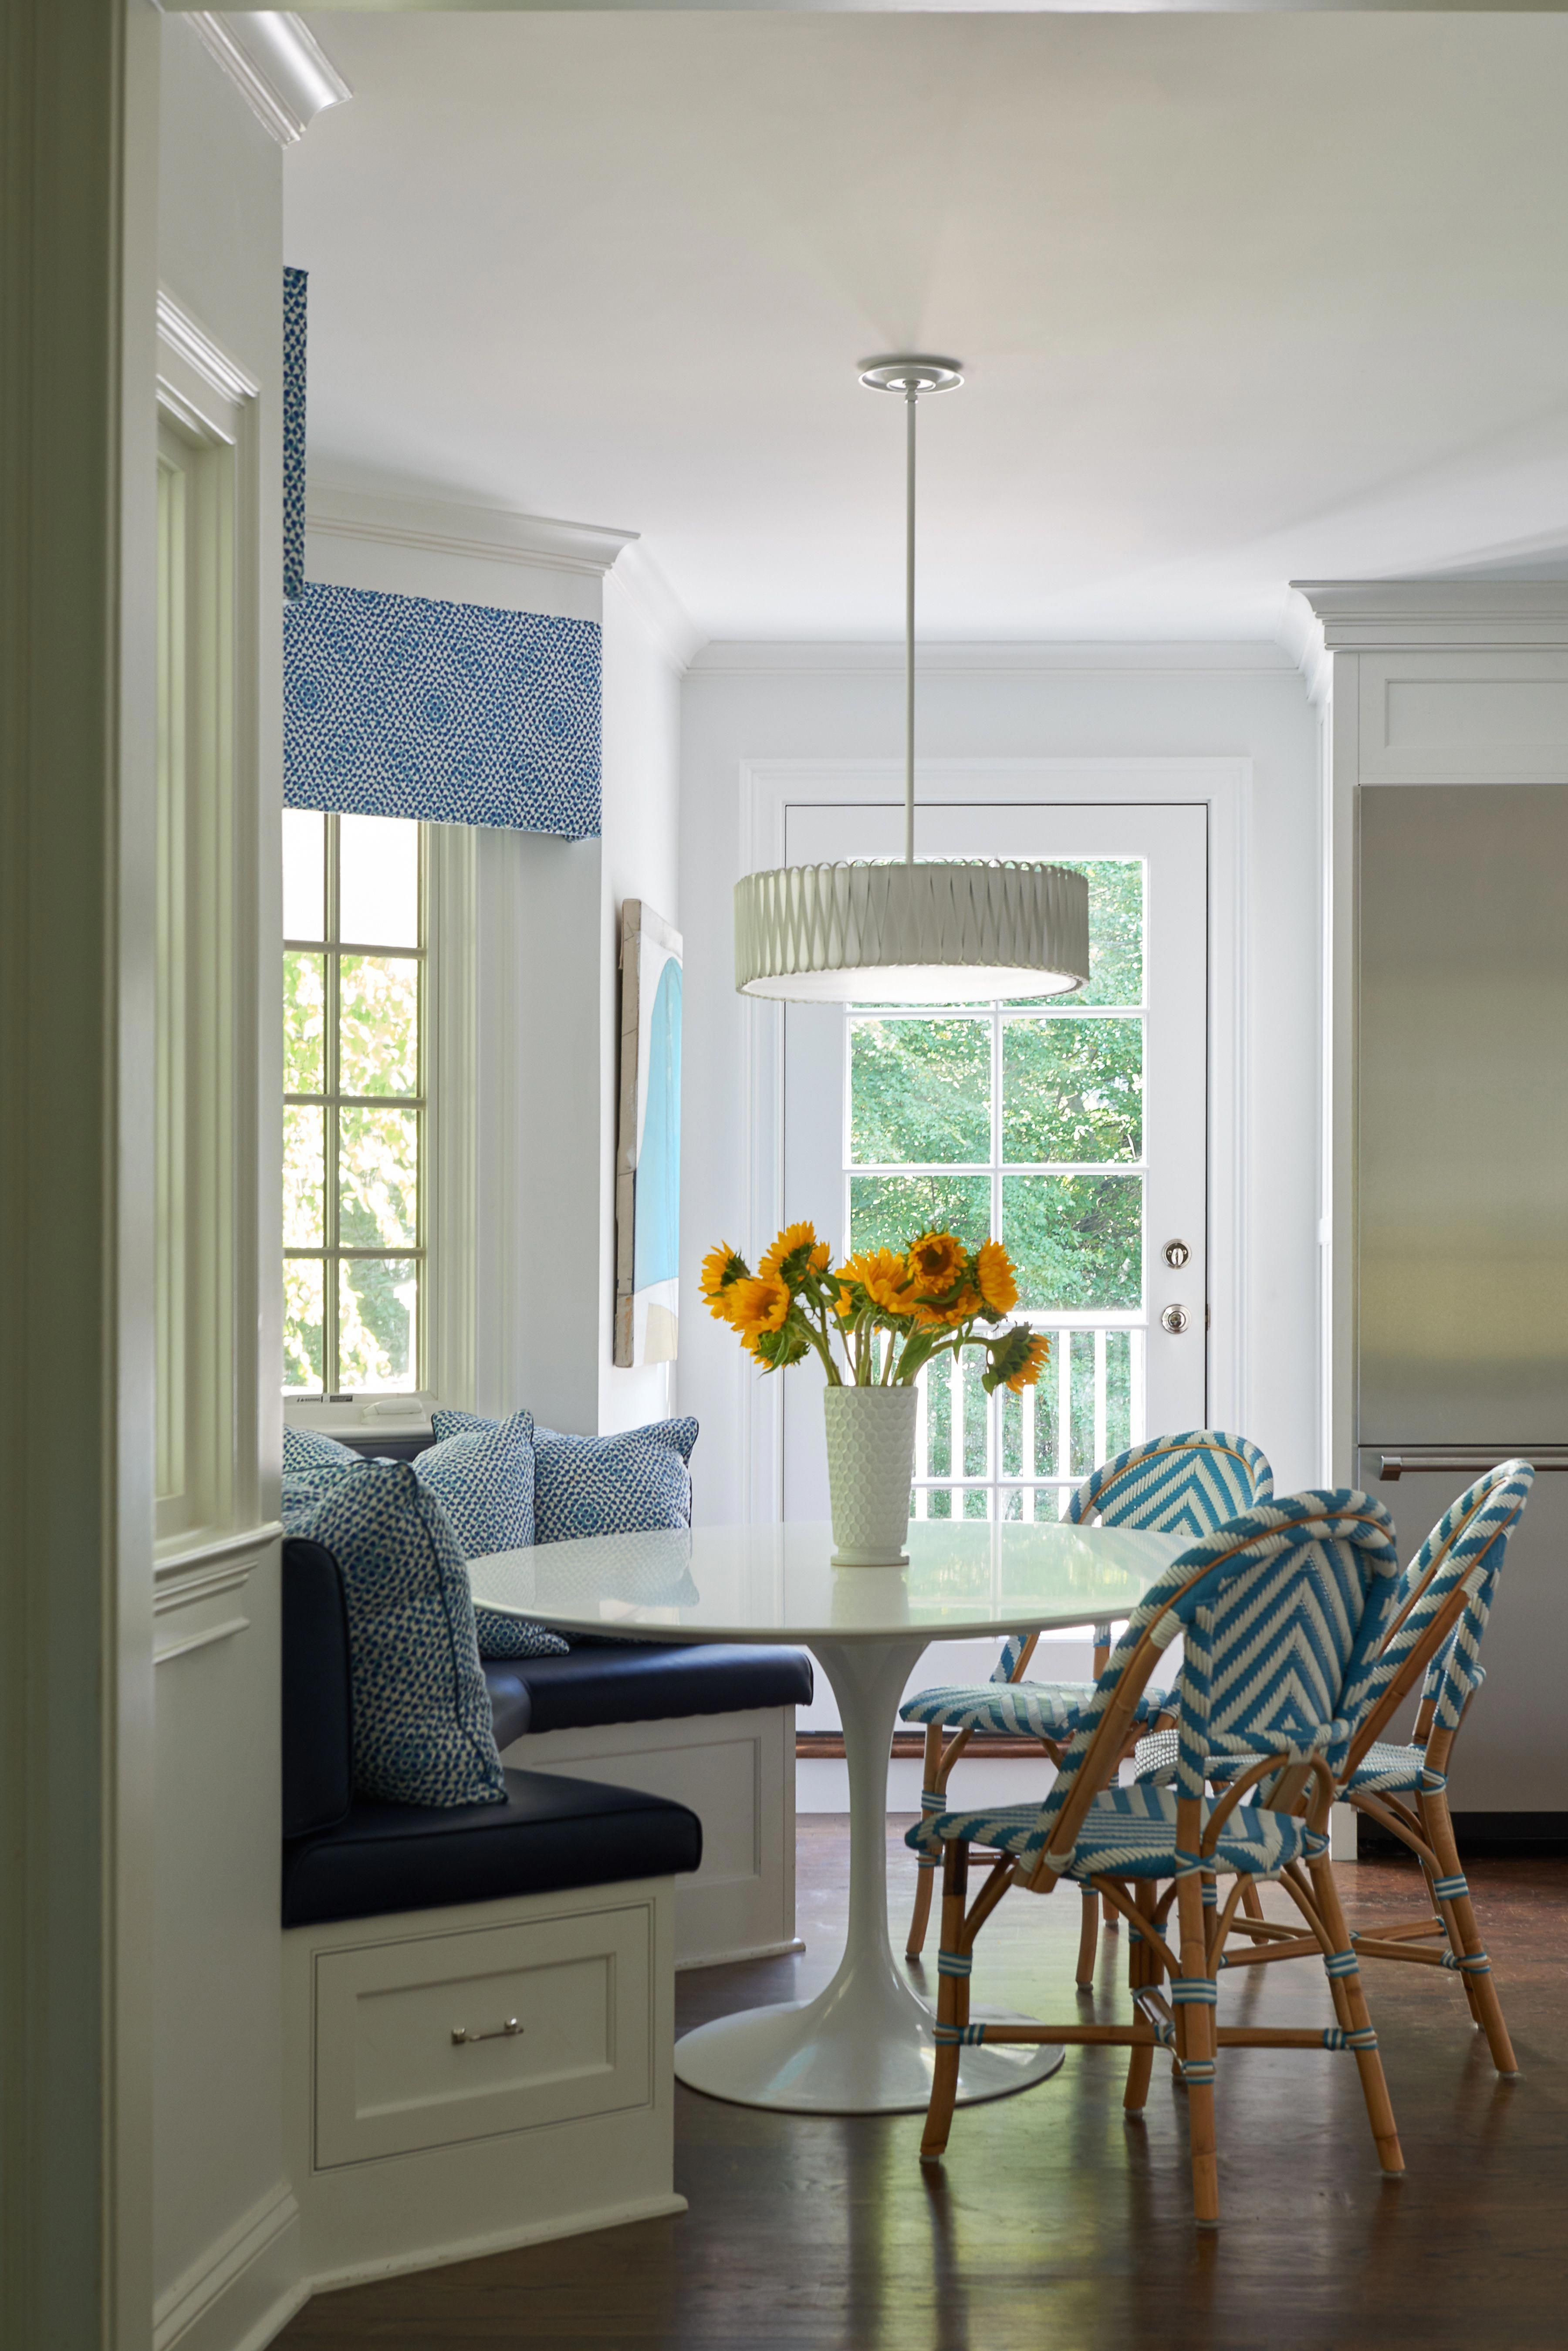 Breakfast Table Nook With Saarinen Table And Banquette Seating Photo Credit Jane Beiles Photography Remod Banquette Seating Dining Nook Modern Kitchen Design